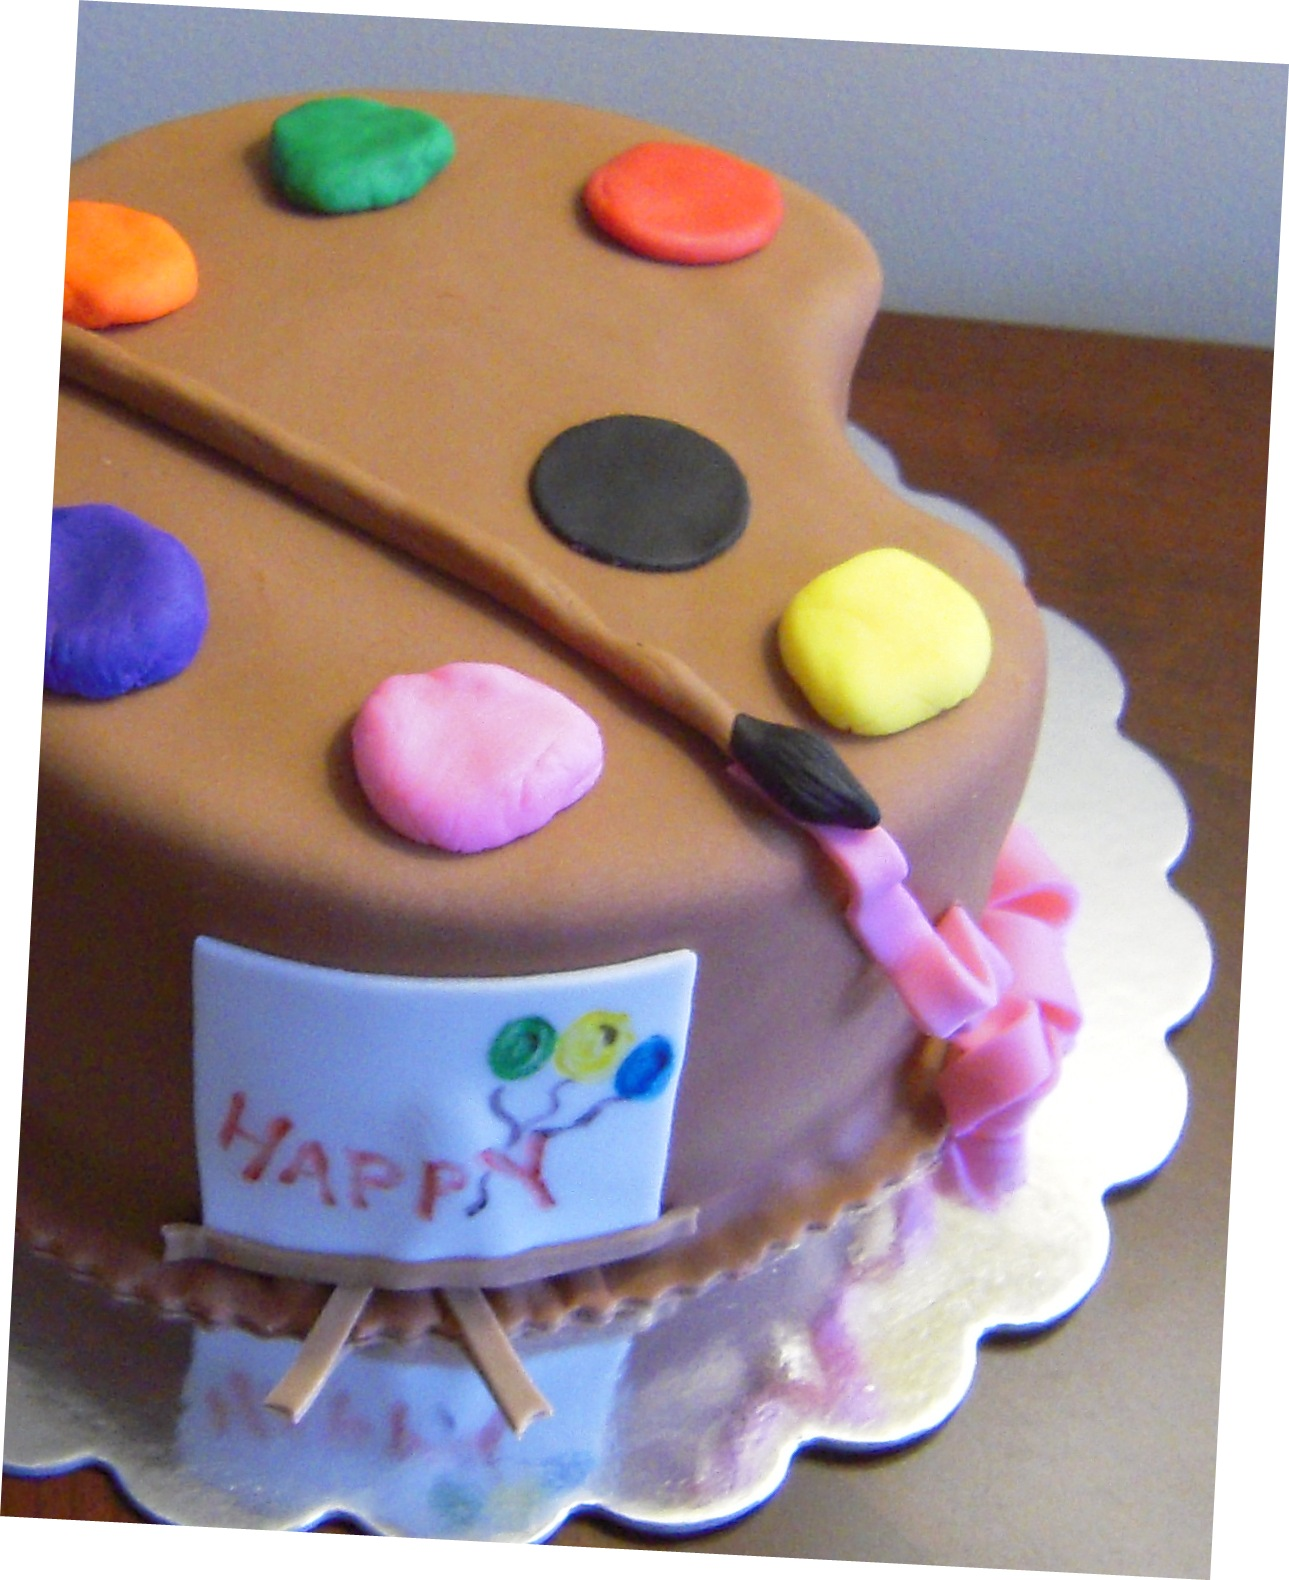 Picture_2010_Cake2+73_cake7.jpg